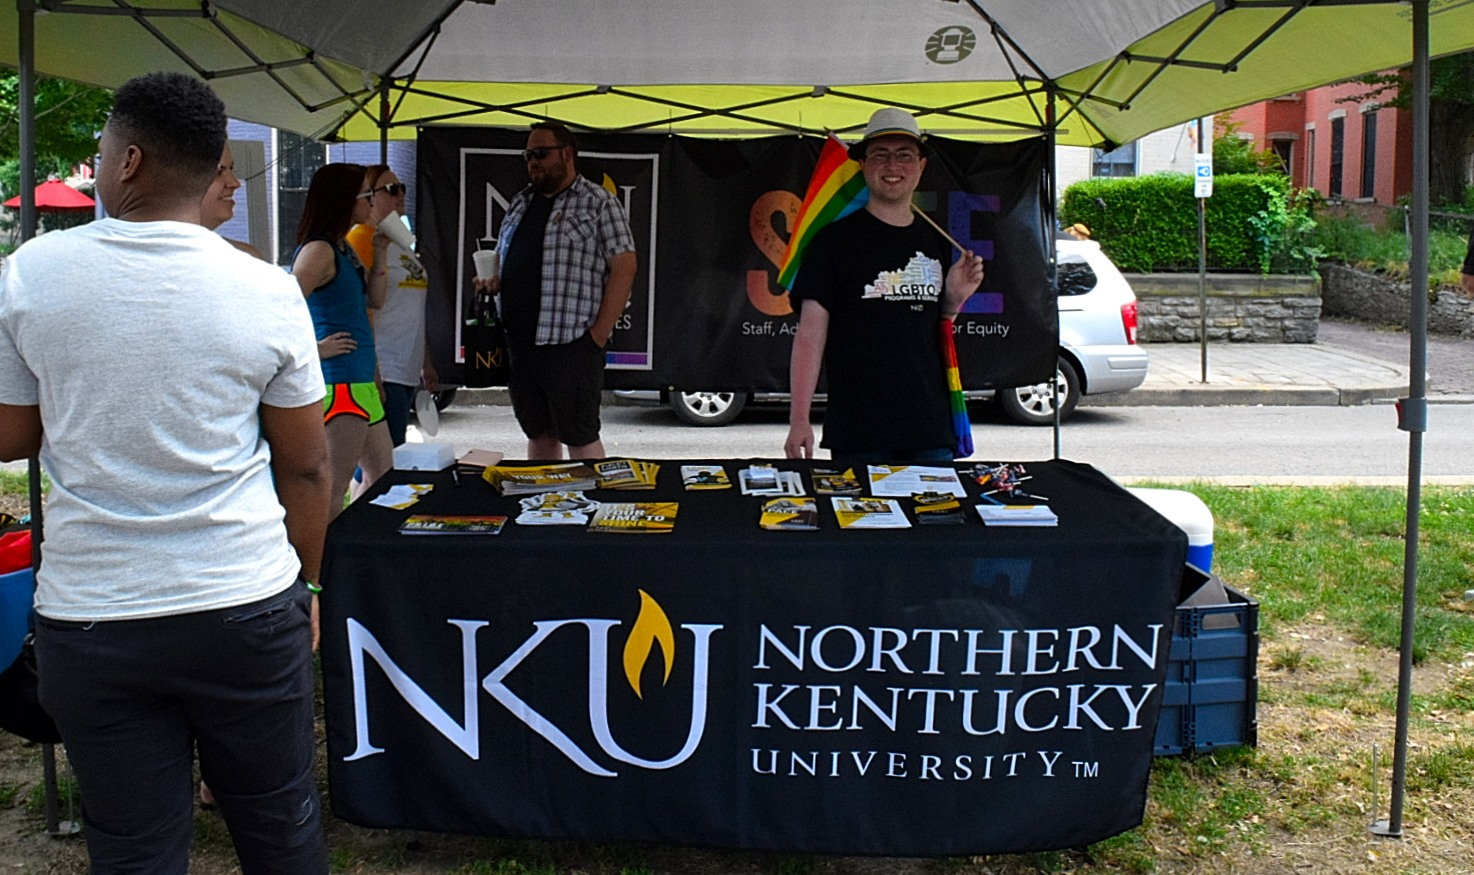 Noah Pittinger handed out resources at NKU's booth. Rainbow flag in hand, he hope everyone can one day be themselves.